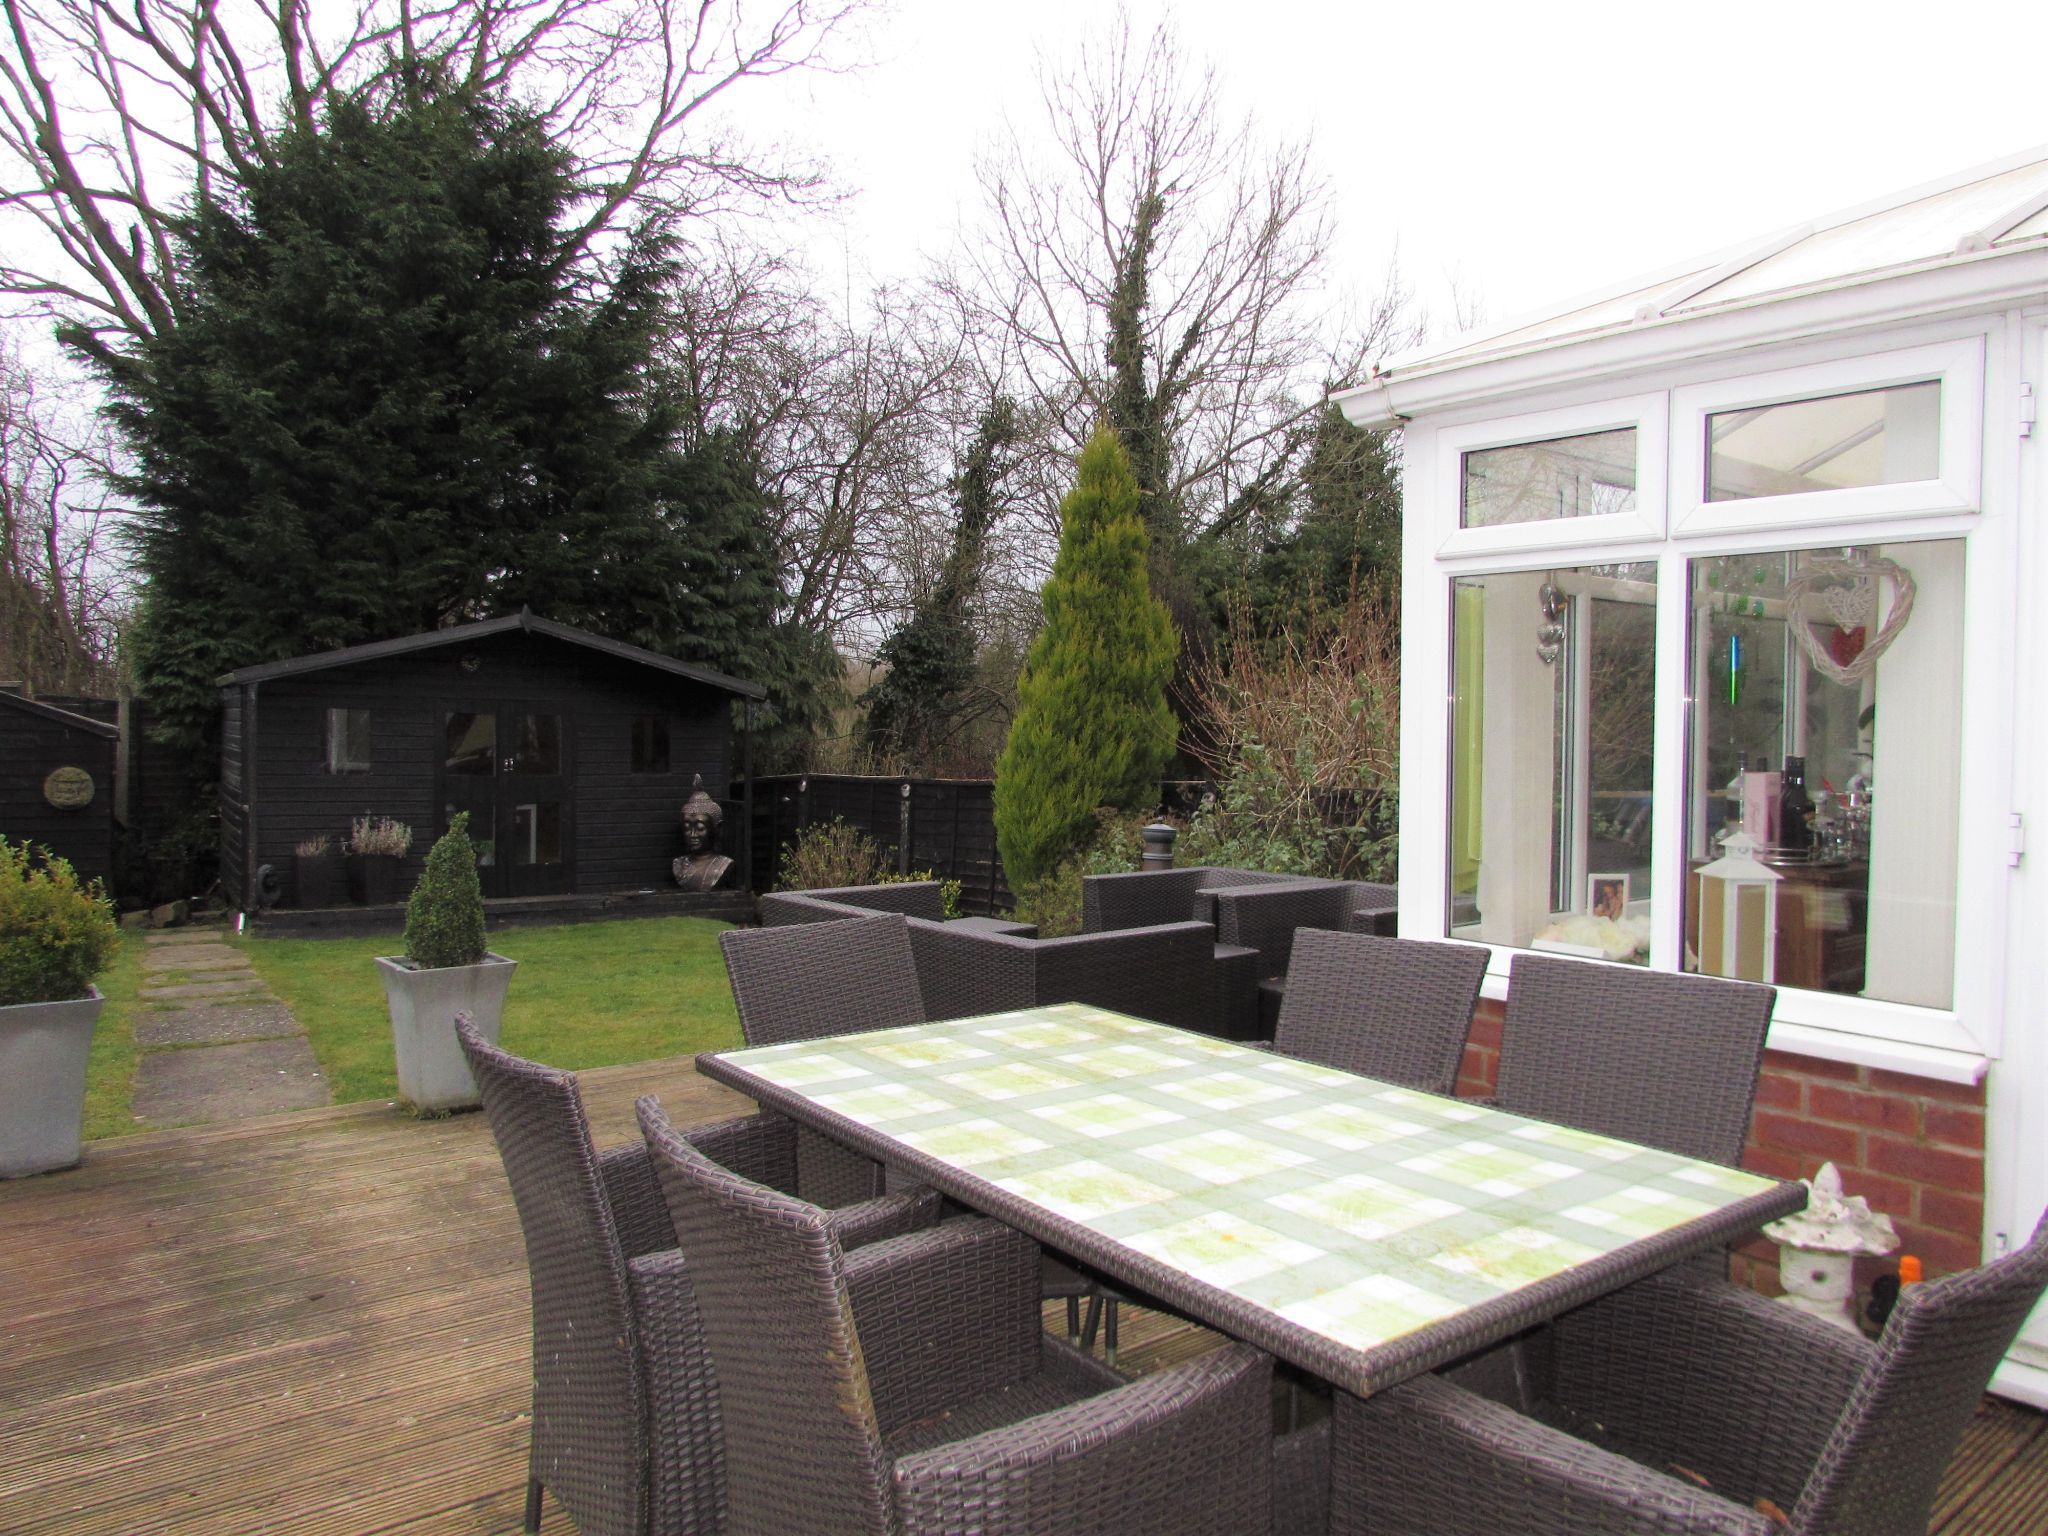 3 Bedroom Semi-detached House For Sale - Rear Garden Decking